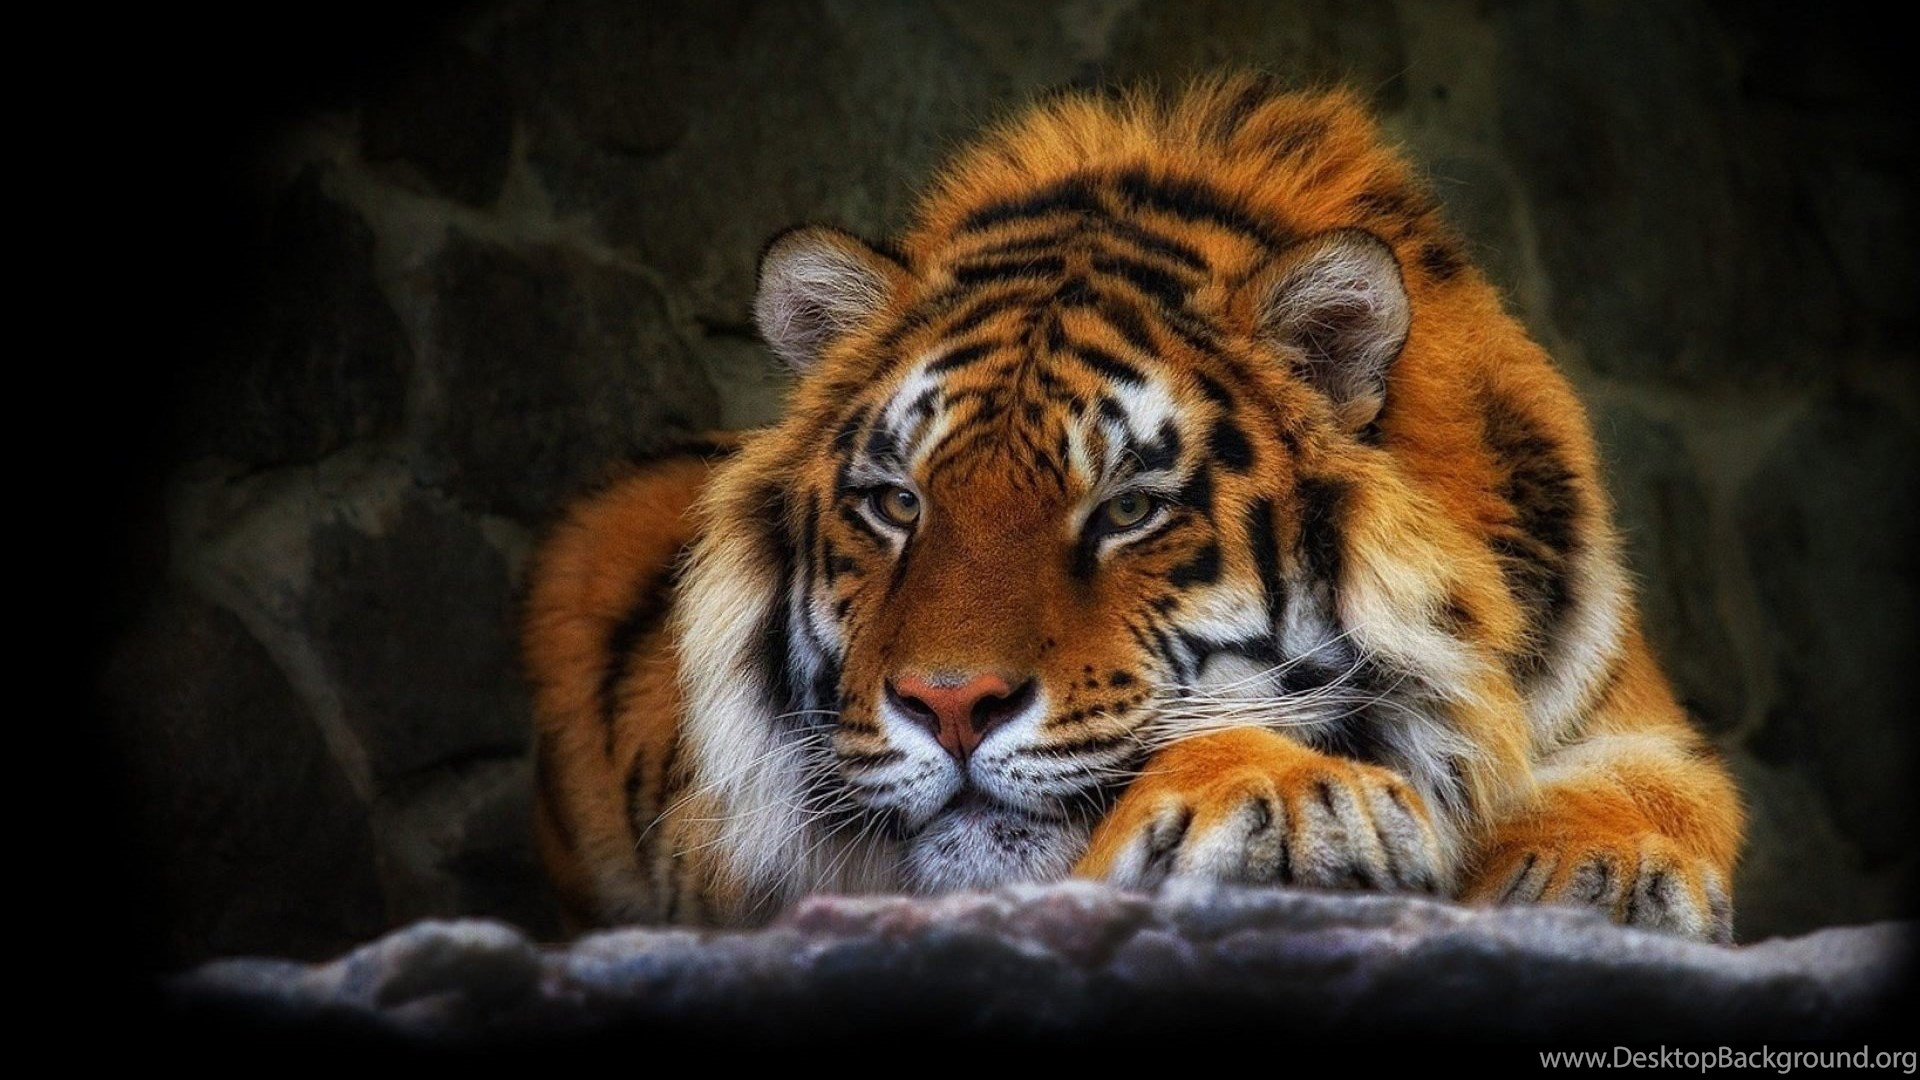 Wild Cat Tiger Wallpapers Hd Free Download Desktop Background